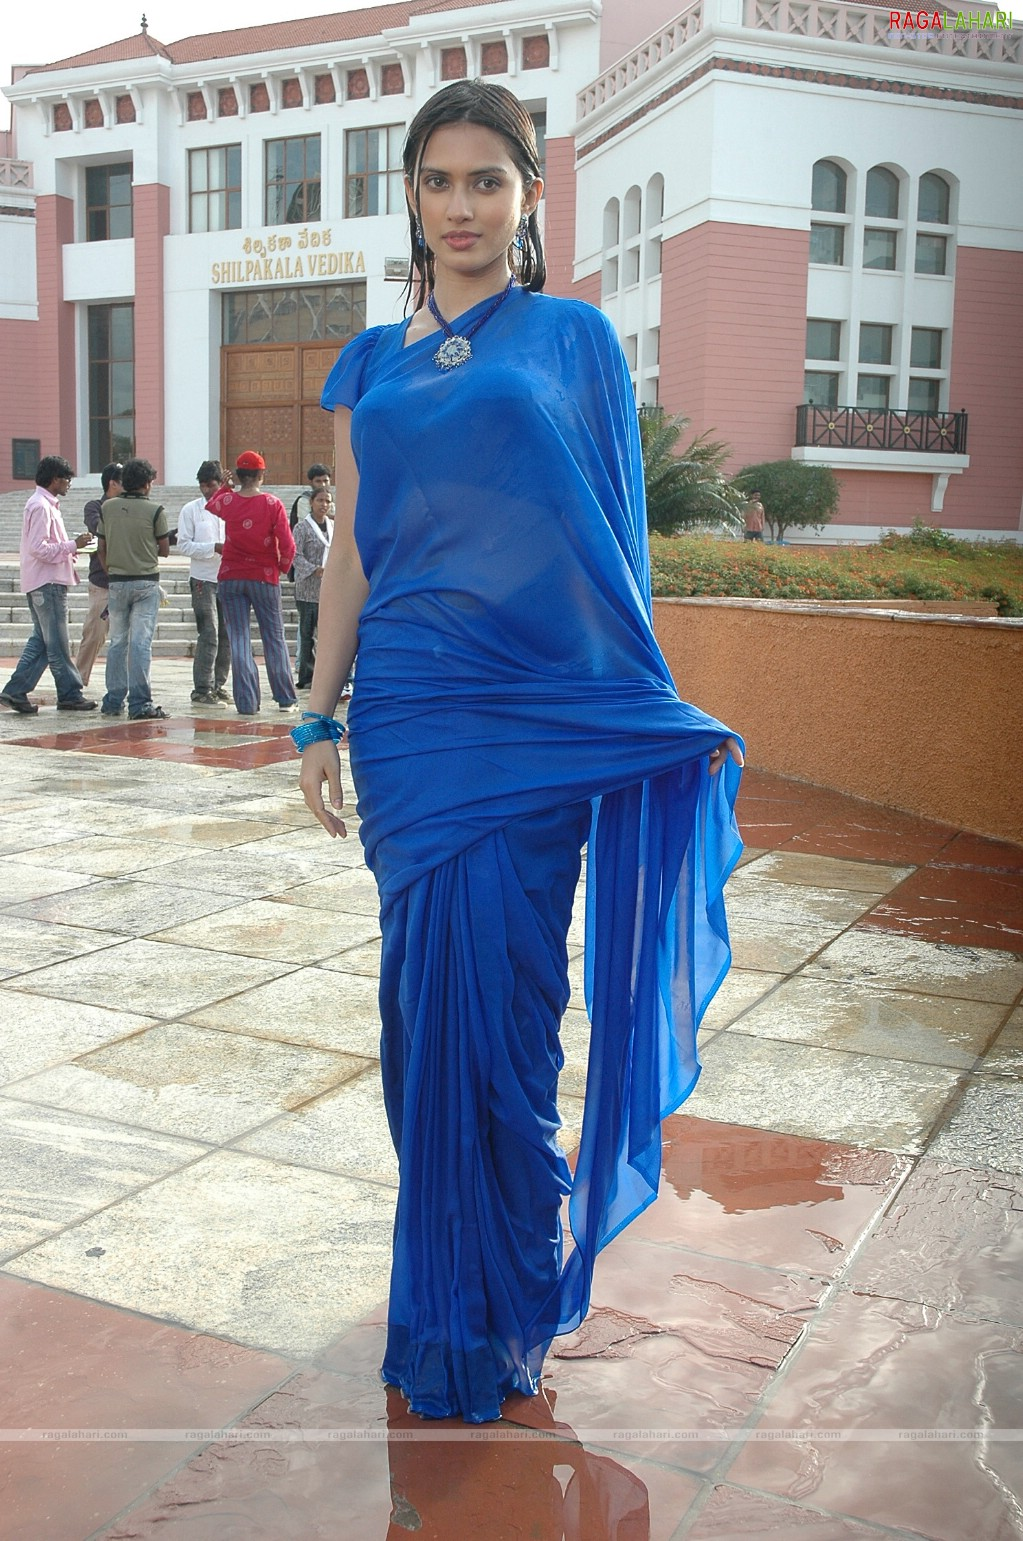 bollywood entertainment gowri pandit boobs show in wet blue saree